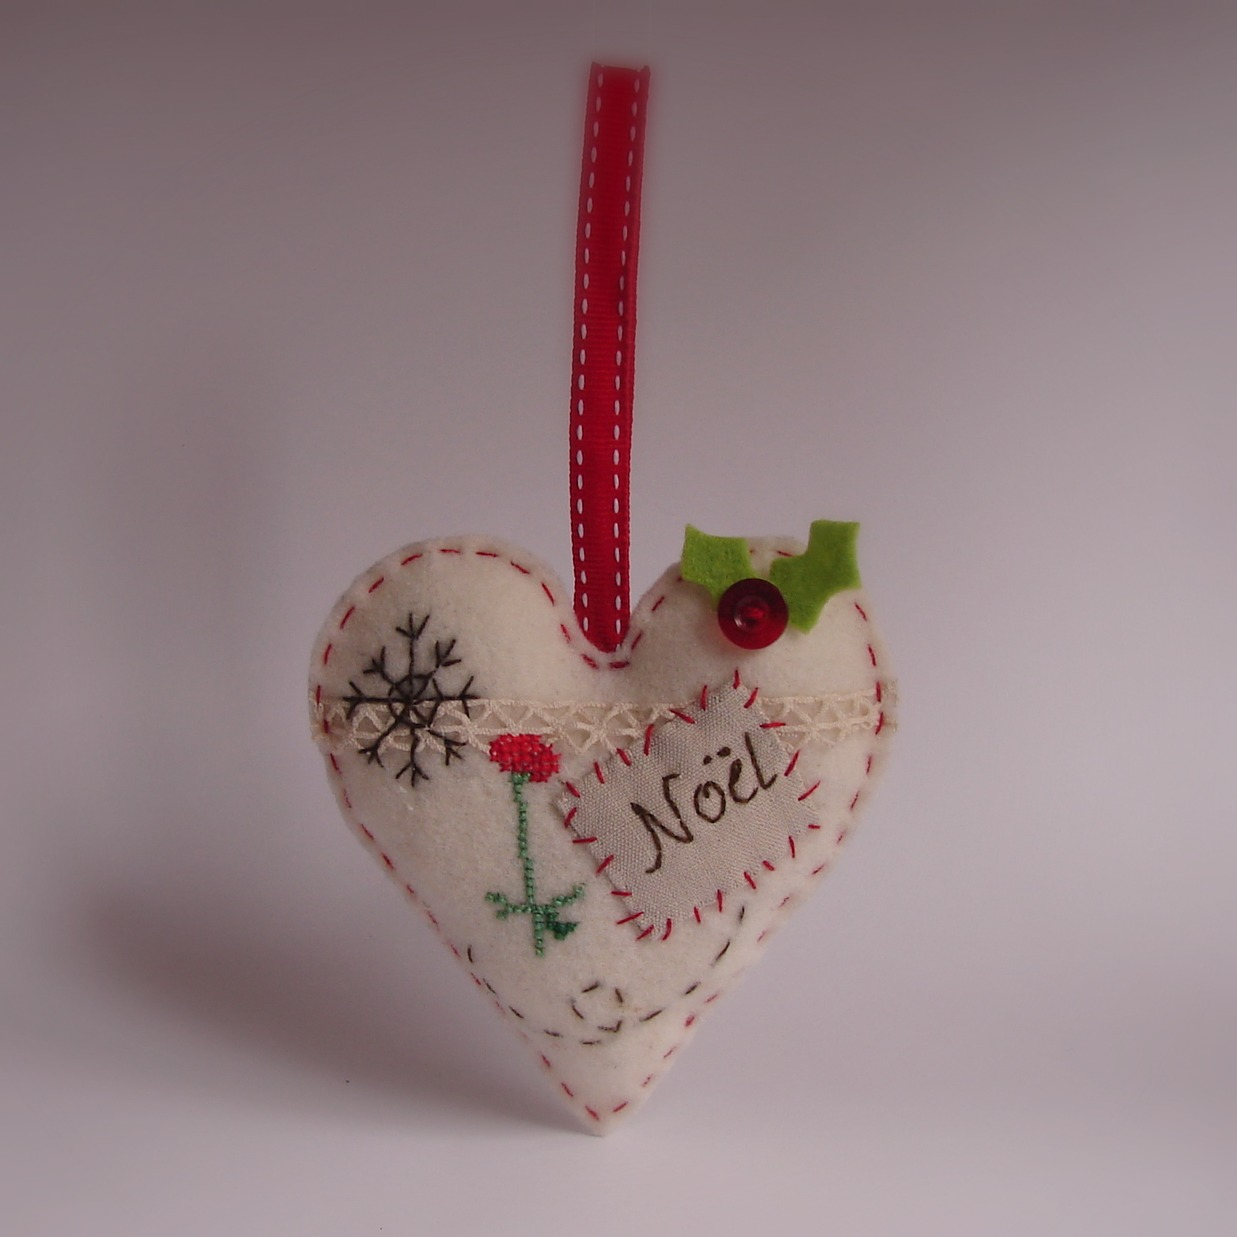 Christmas felt ornaments - Some More Pretty Ornaments To Decorate The Tree These Are Made With Gorgeous Wool Felt They Are Hand Embroidered The Heart Has Been Embellished With